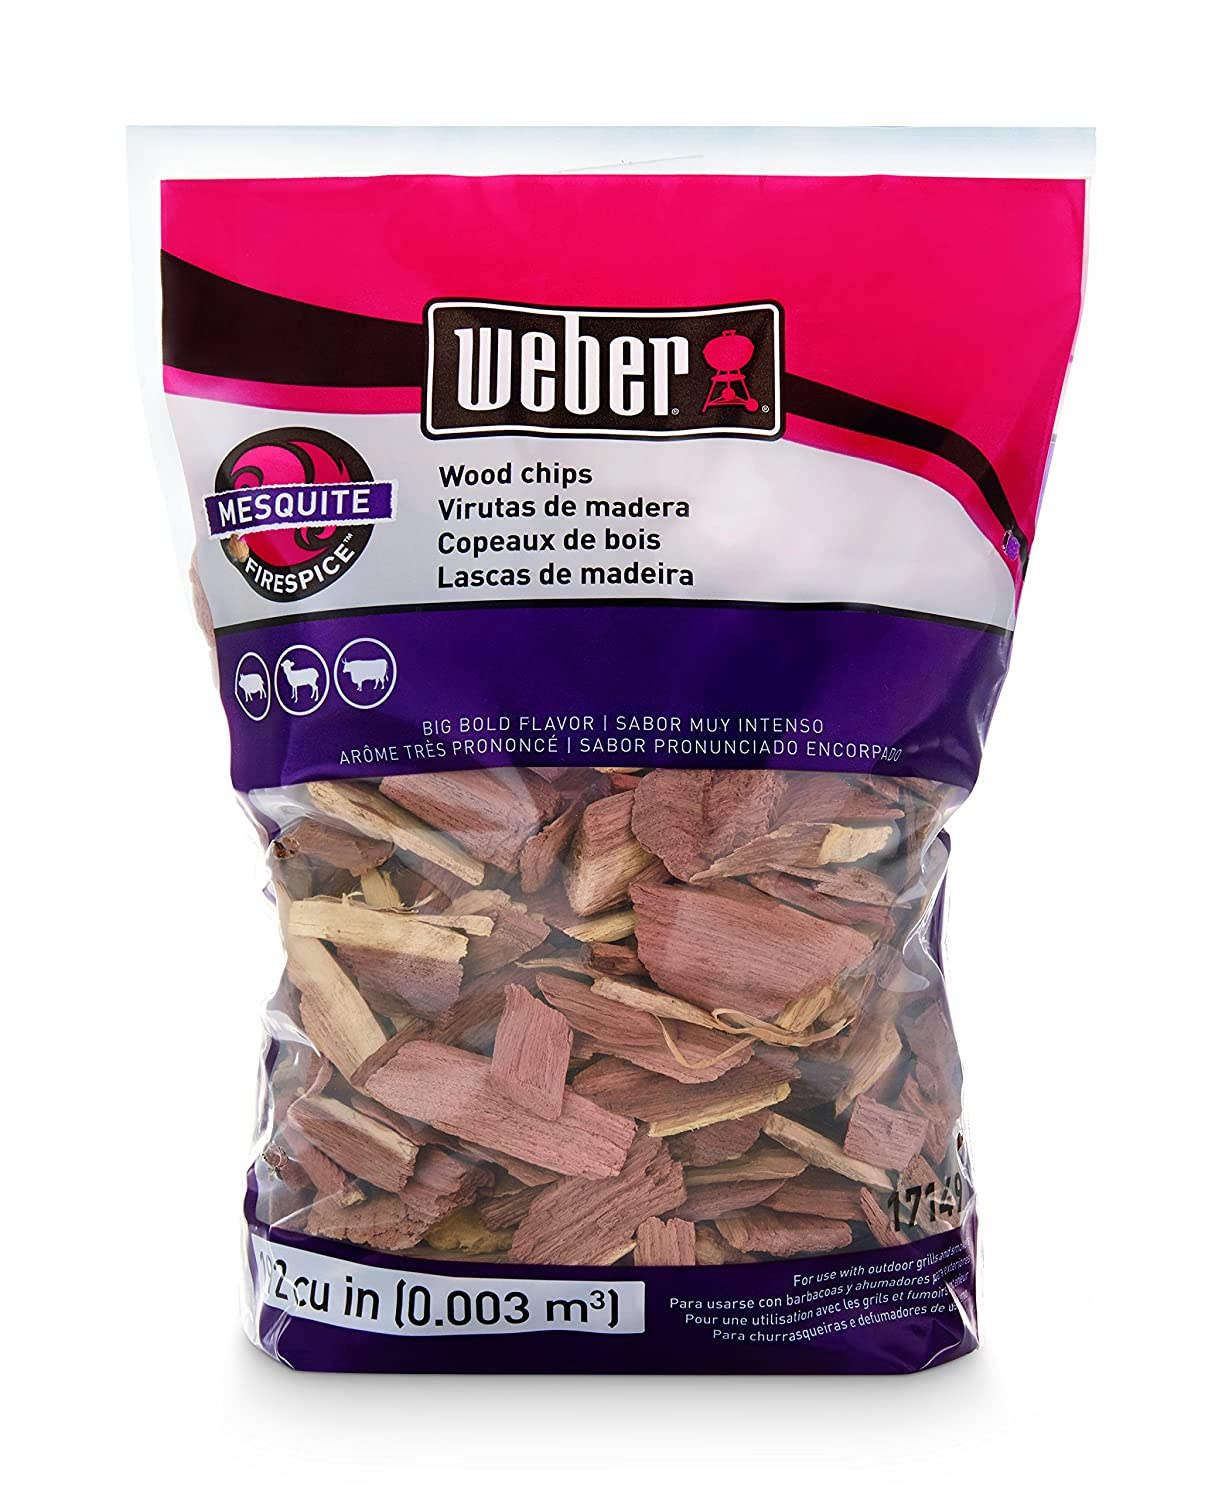 Weber Available Stephen Products 17149 Mesquite Wood Chips, 192 cu. in. (0.003 c, 2 lb